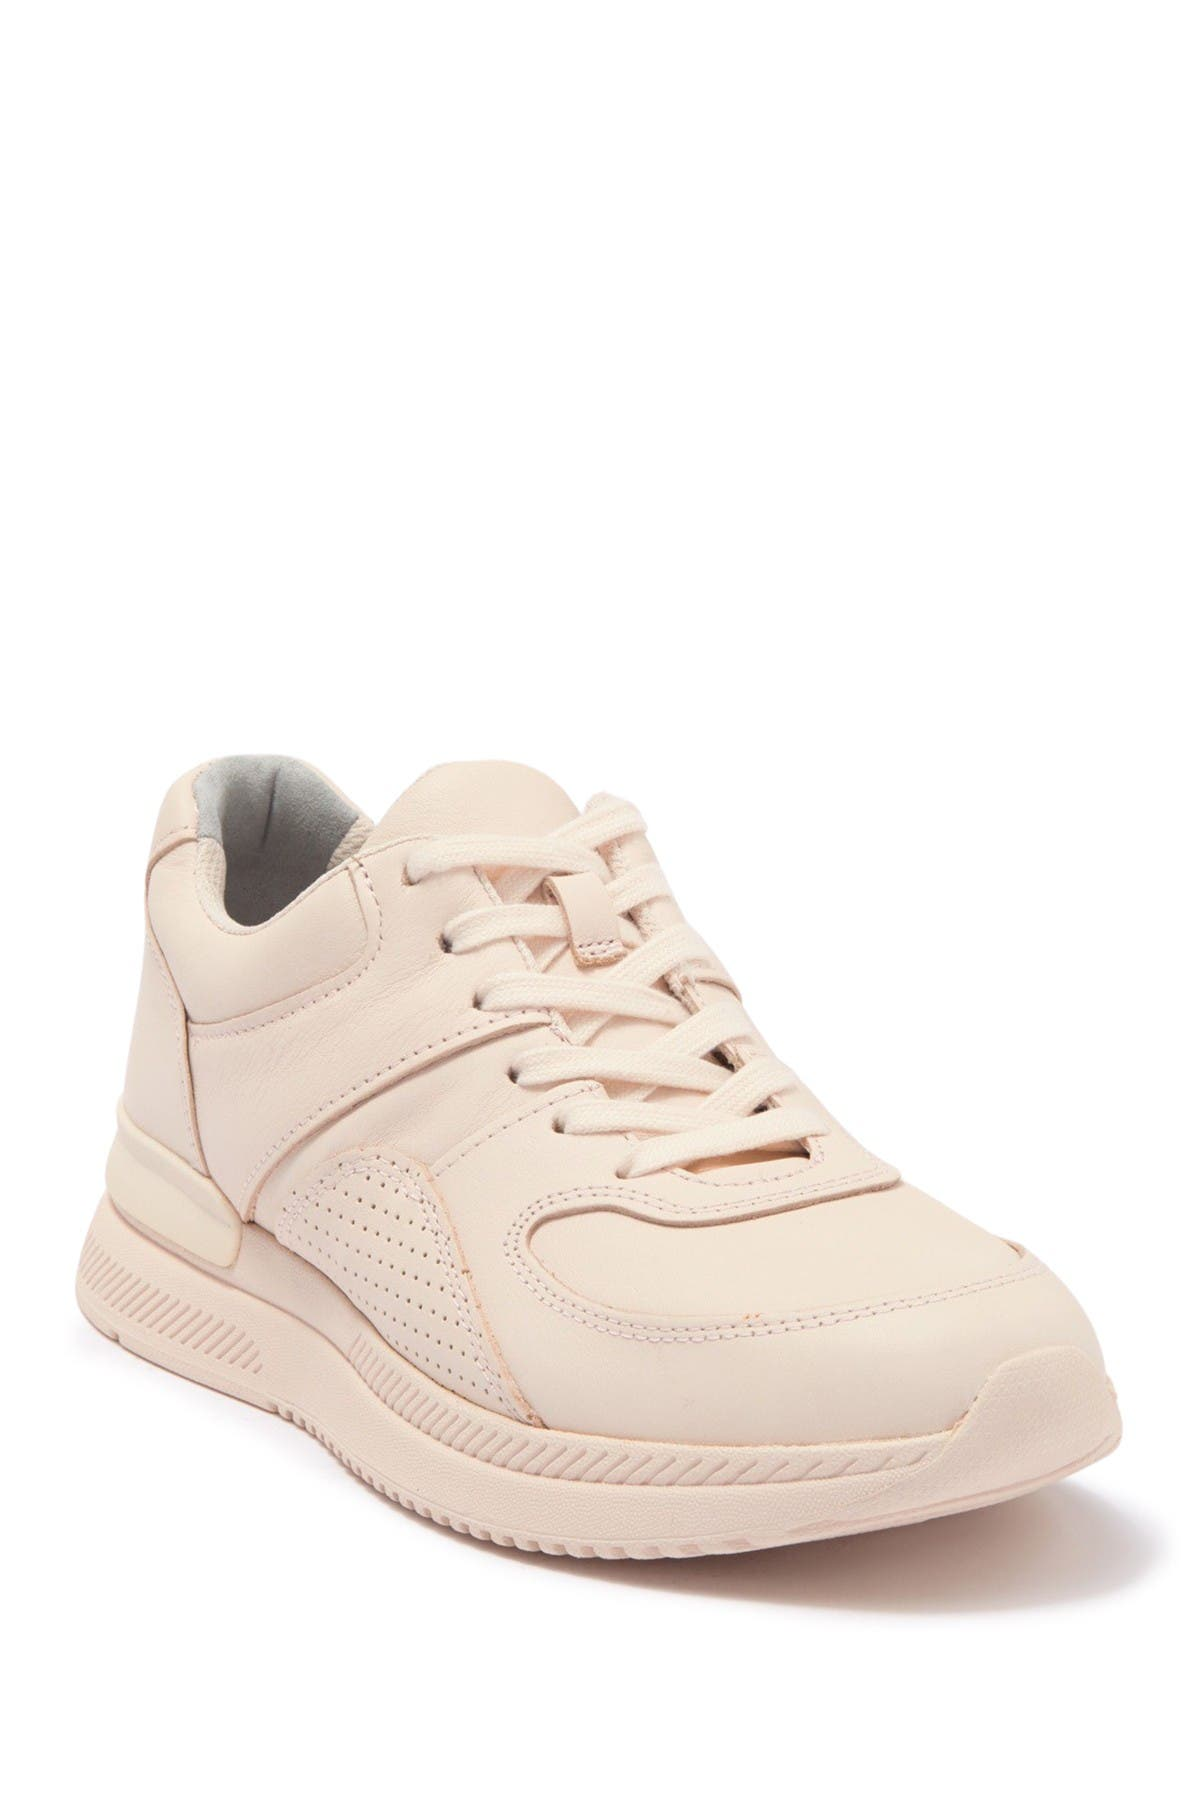 Image of EVERLANE The Trainer Leather Sneaker